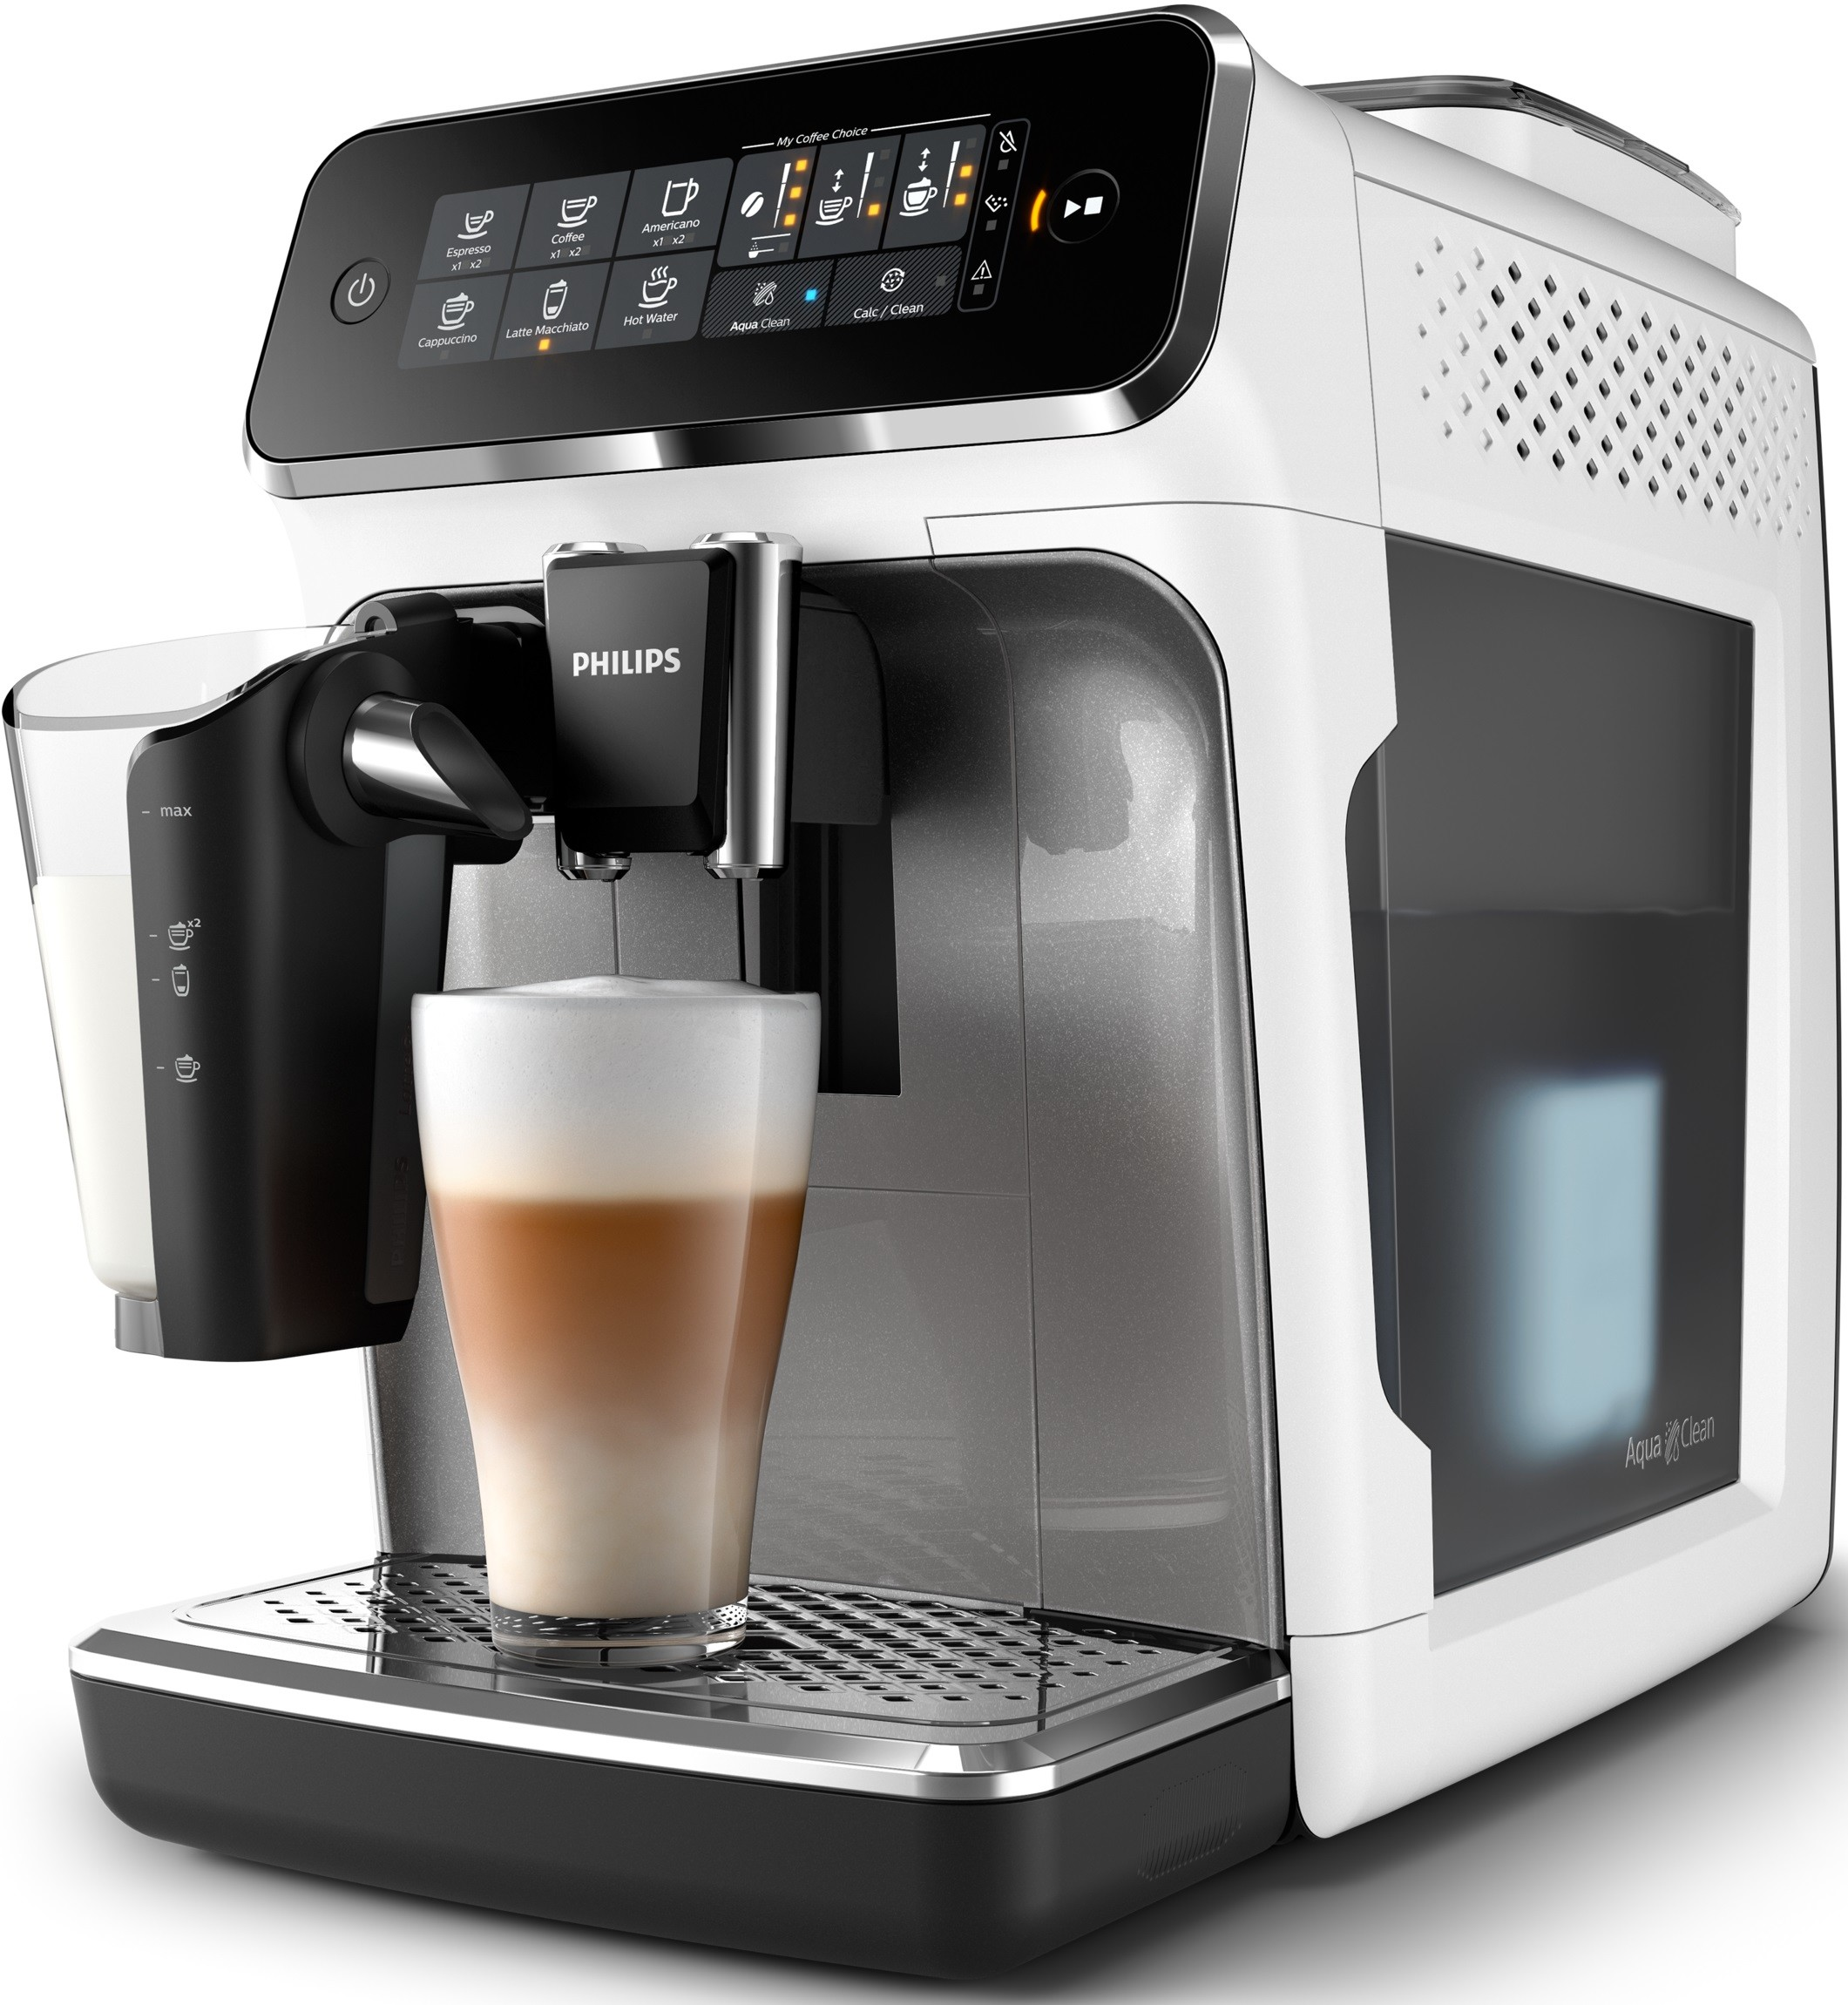 Philips EP3243 Series 3200 LatteGo